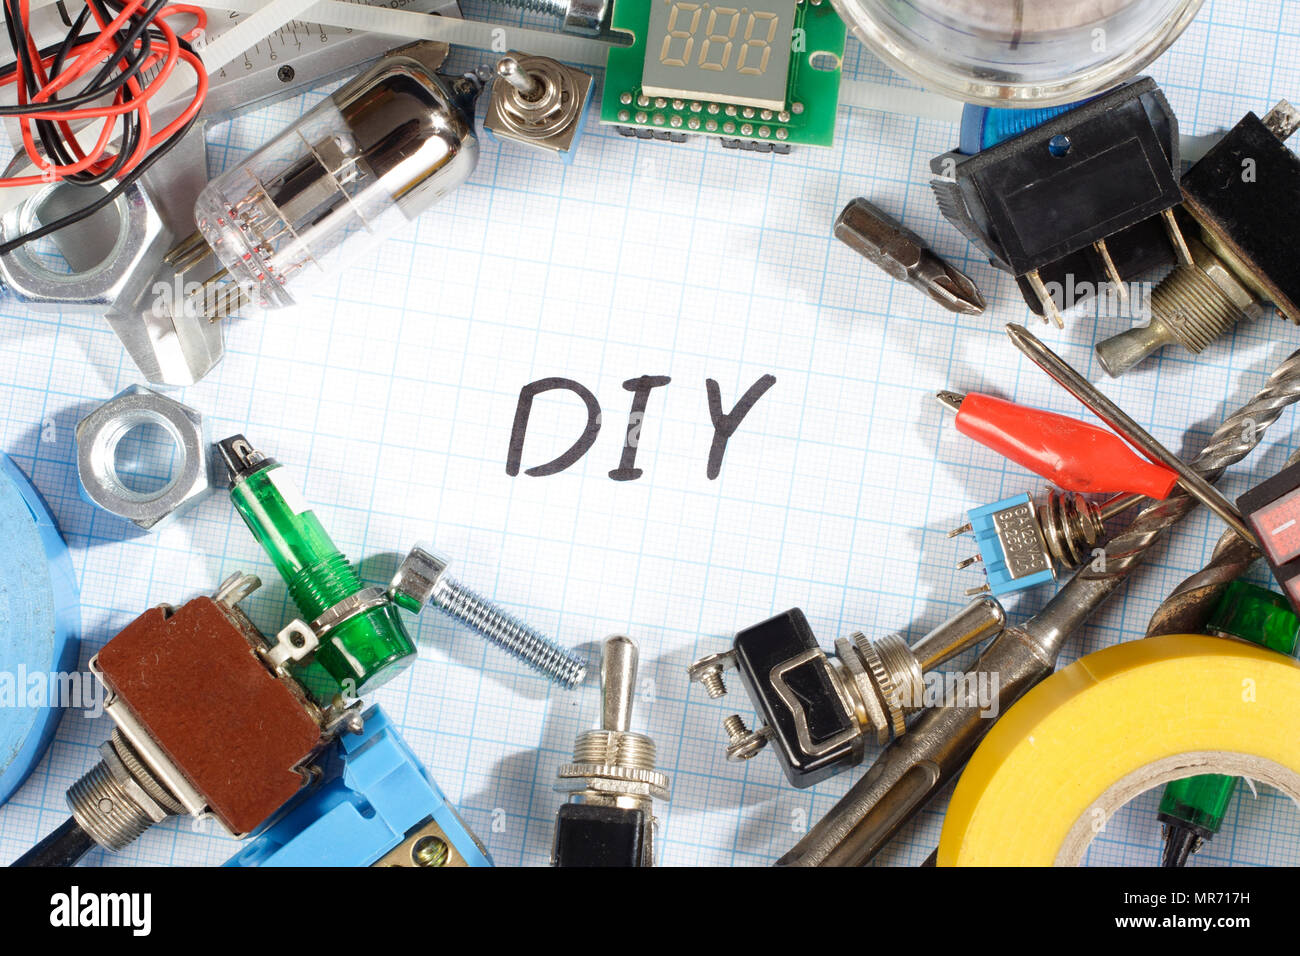 Do it yourself - old retro radio electronic parts vintage background